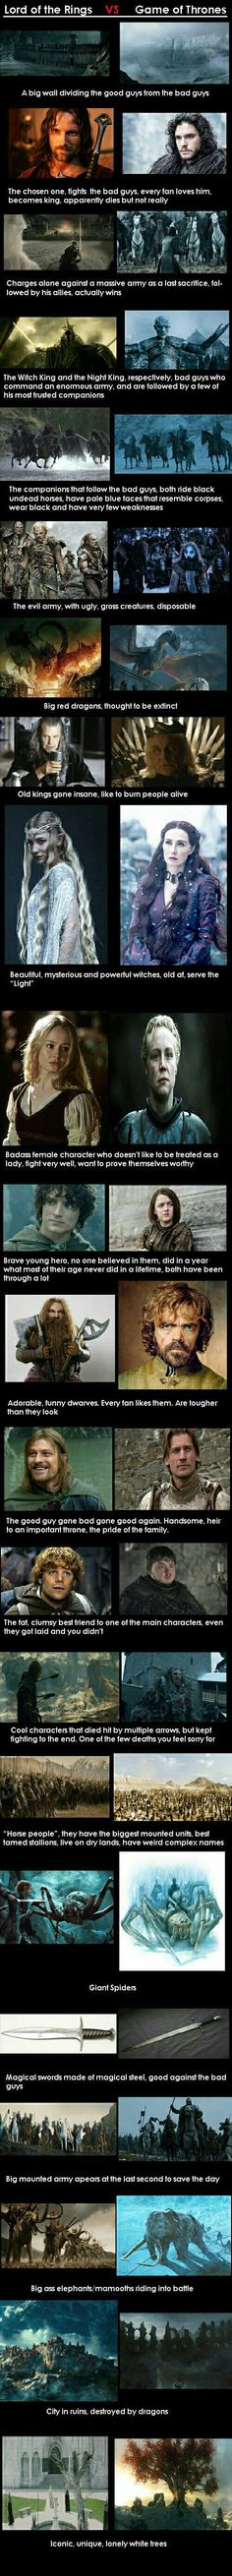 Lord of the rings and Game of thrones similarities.